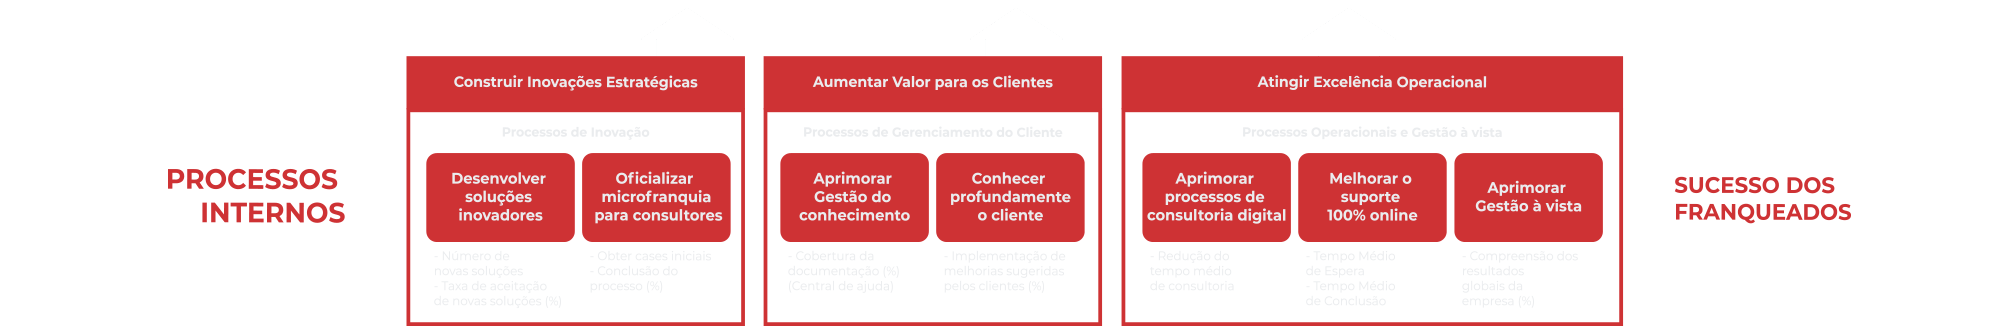 B4B Group Mapa-BSC-da-B4B-Perspectiva-de-Processos-Internos